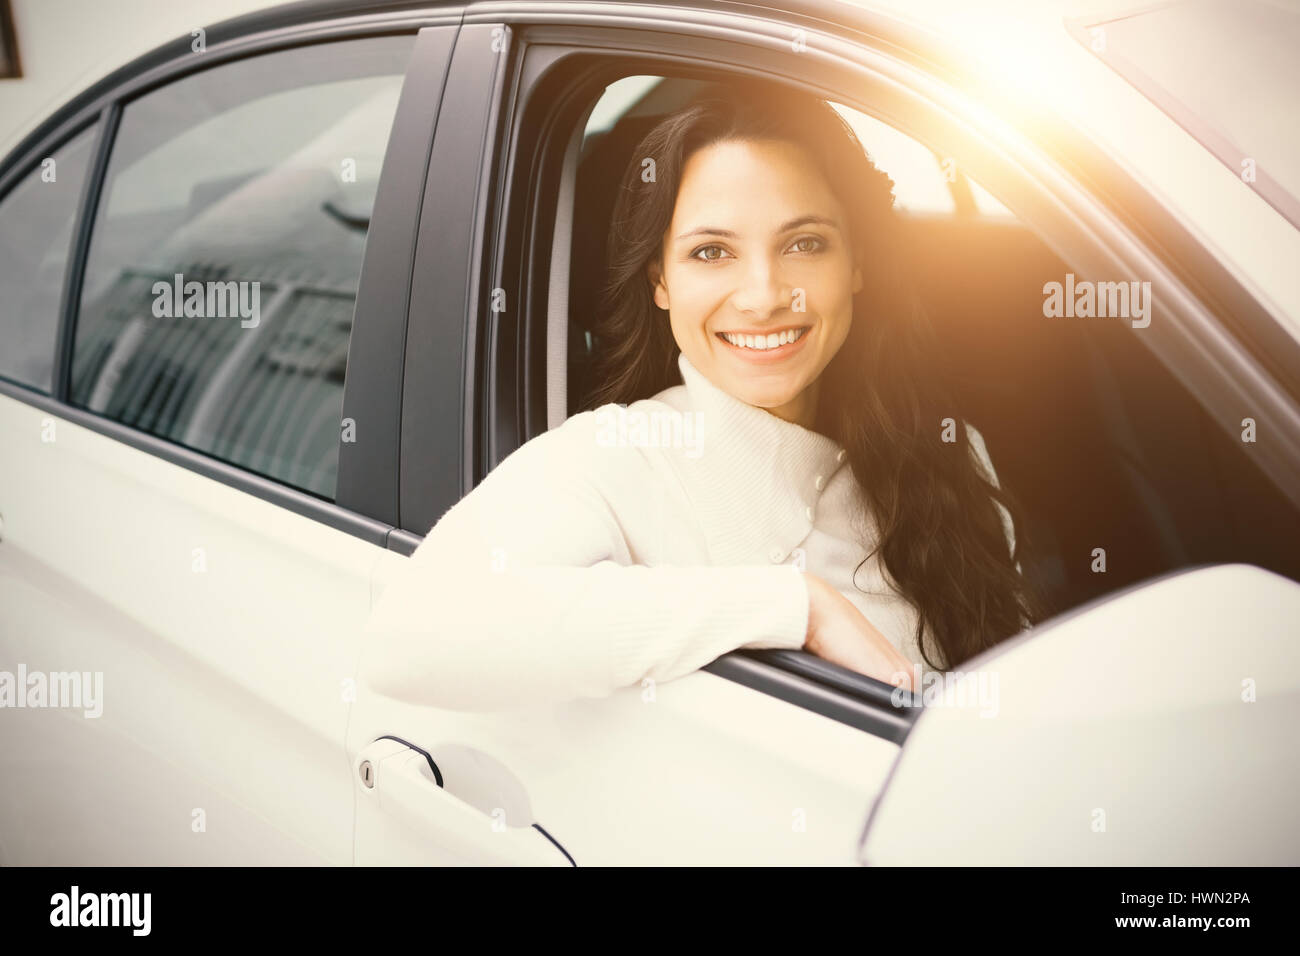 Woman in a car - Stock Image